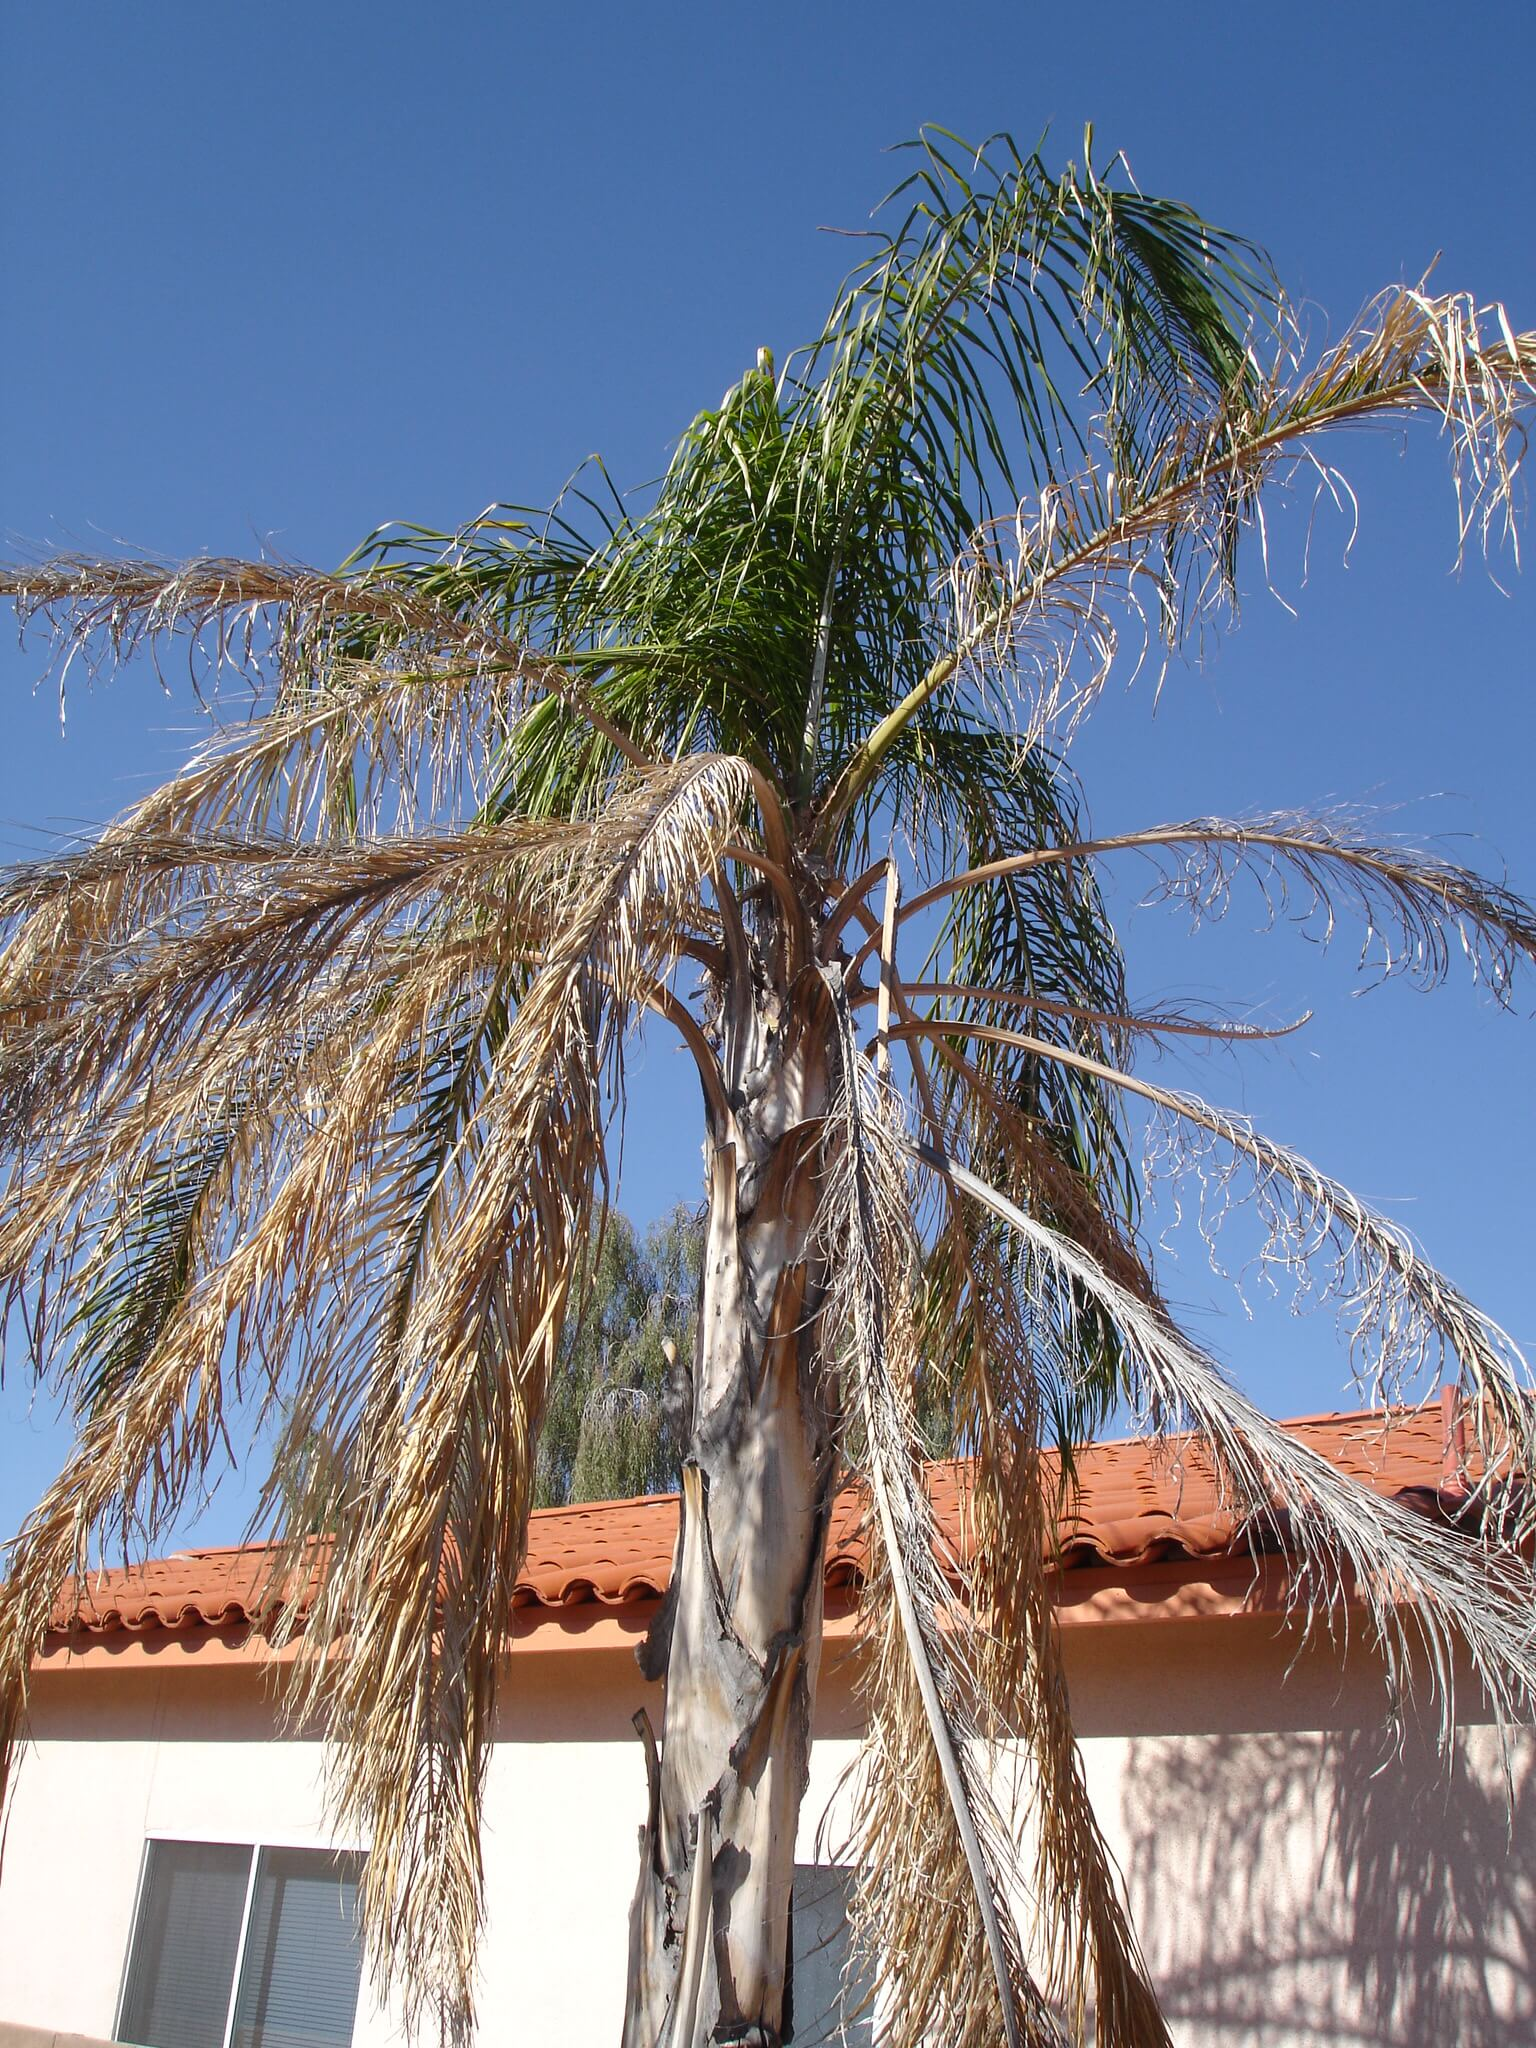 plate 18.1 - 17-1, Frost damage to a queen palm, new spring growth emerging